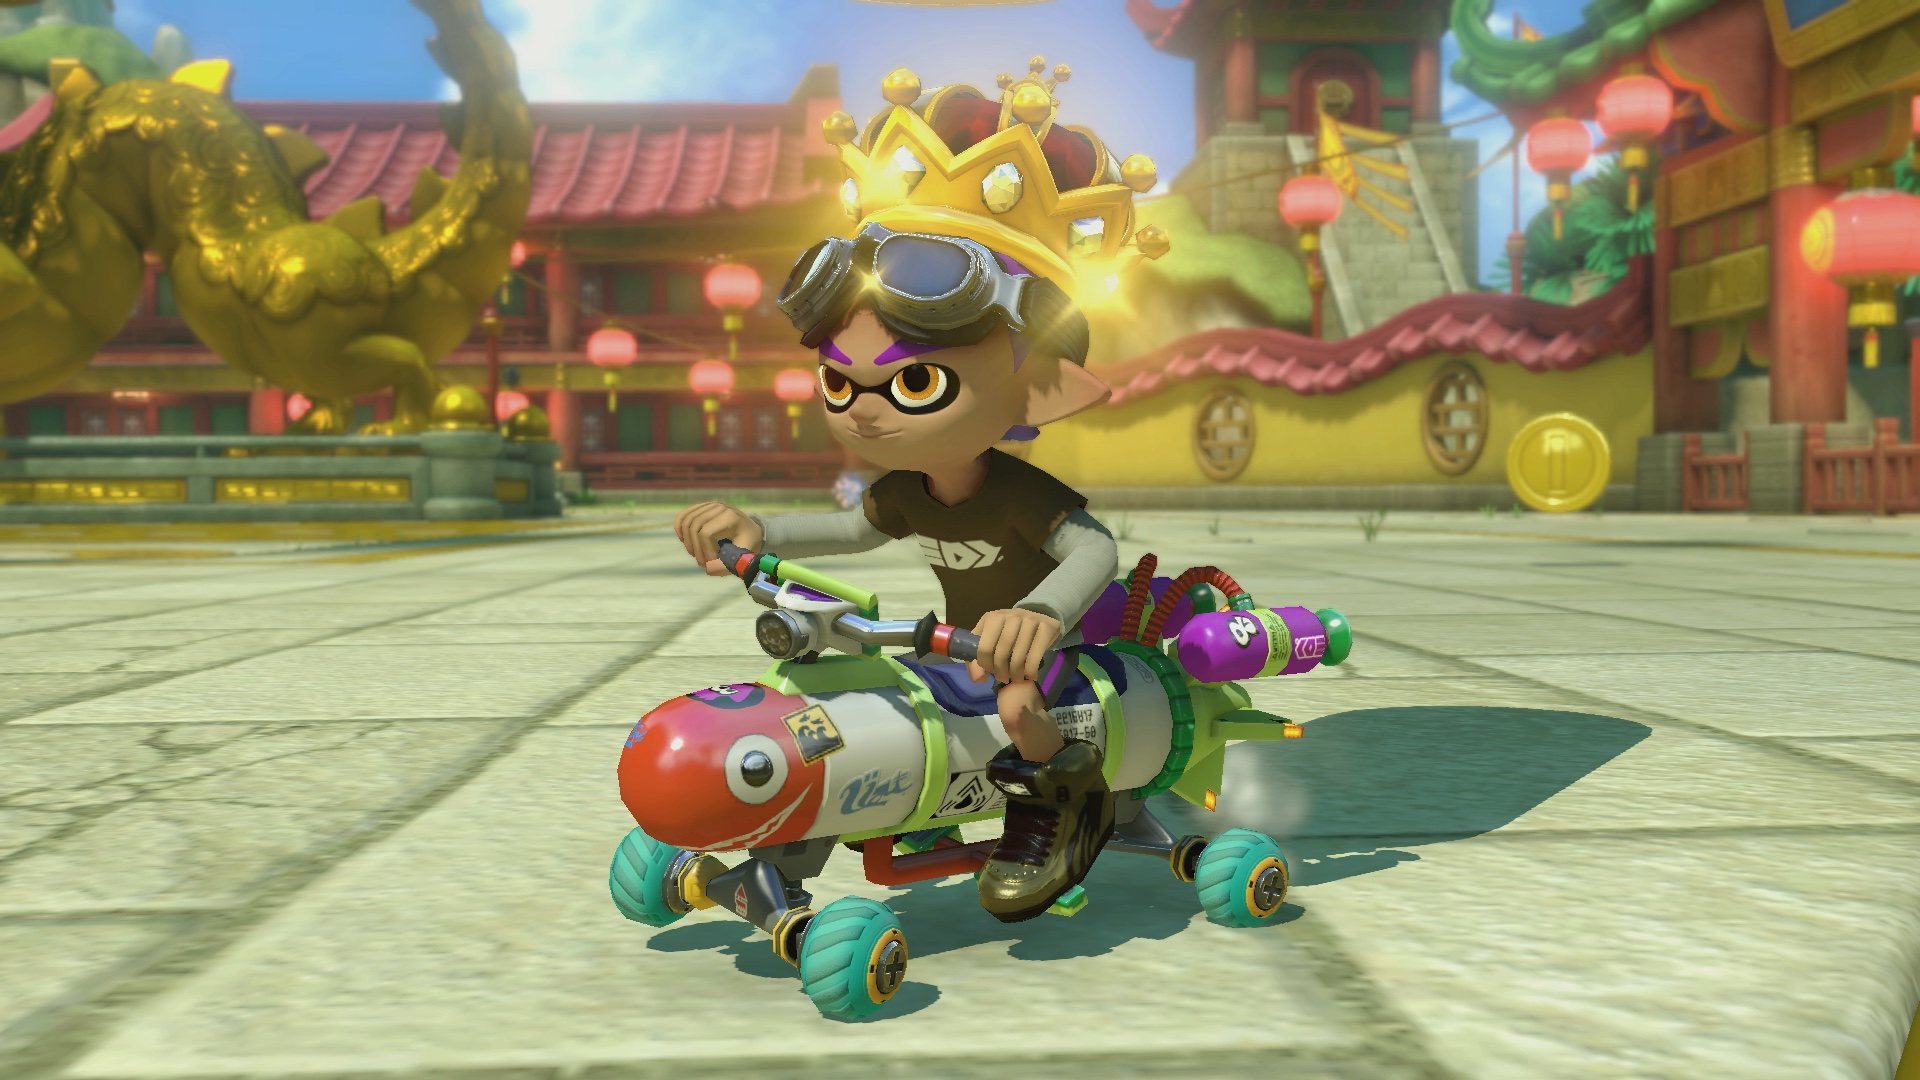 Mario Kart 8 Deluxe (Switch) Review